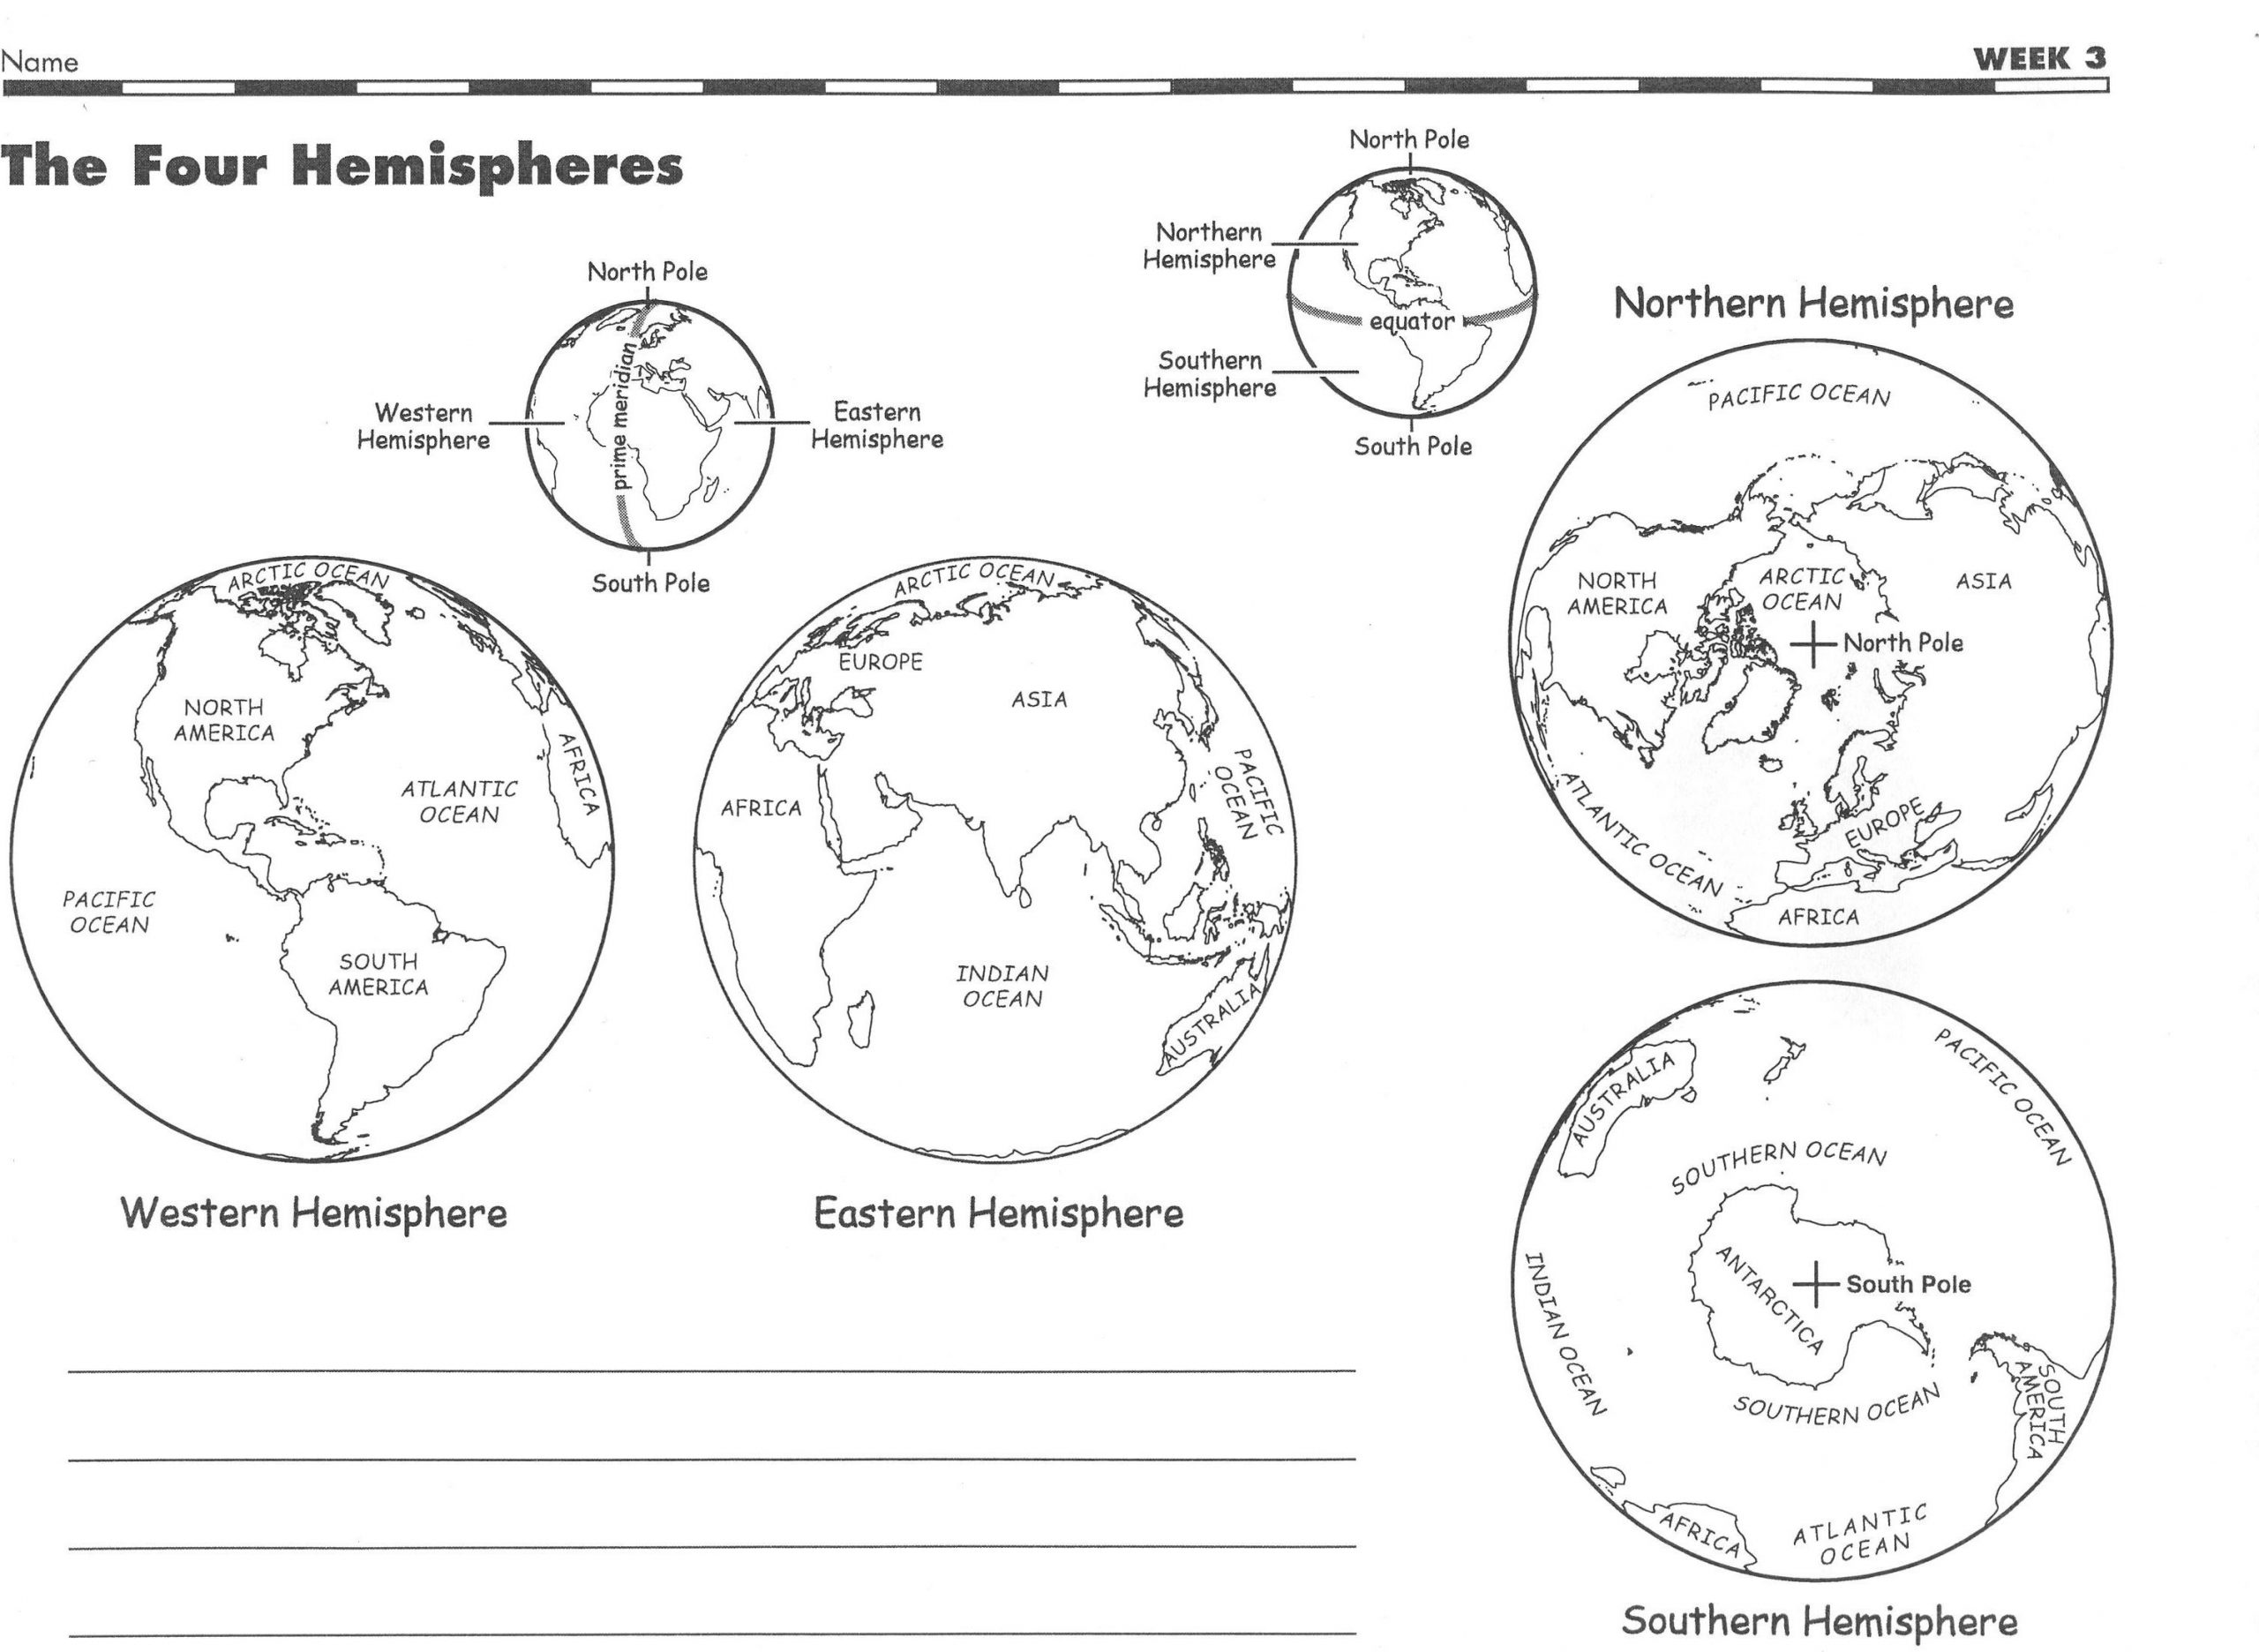 Hemisphere Worksheets 6th Grade social Stu S Mr tombs Class Website